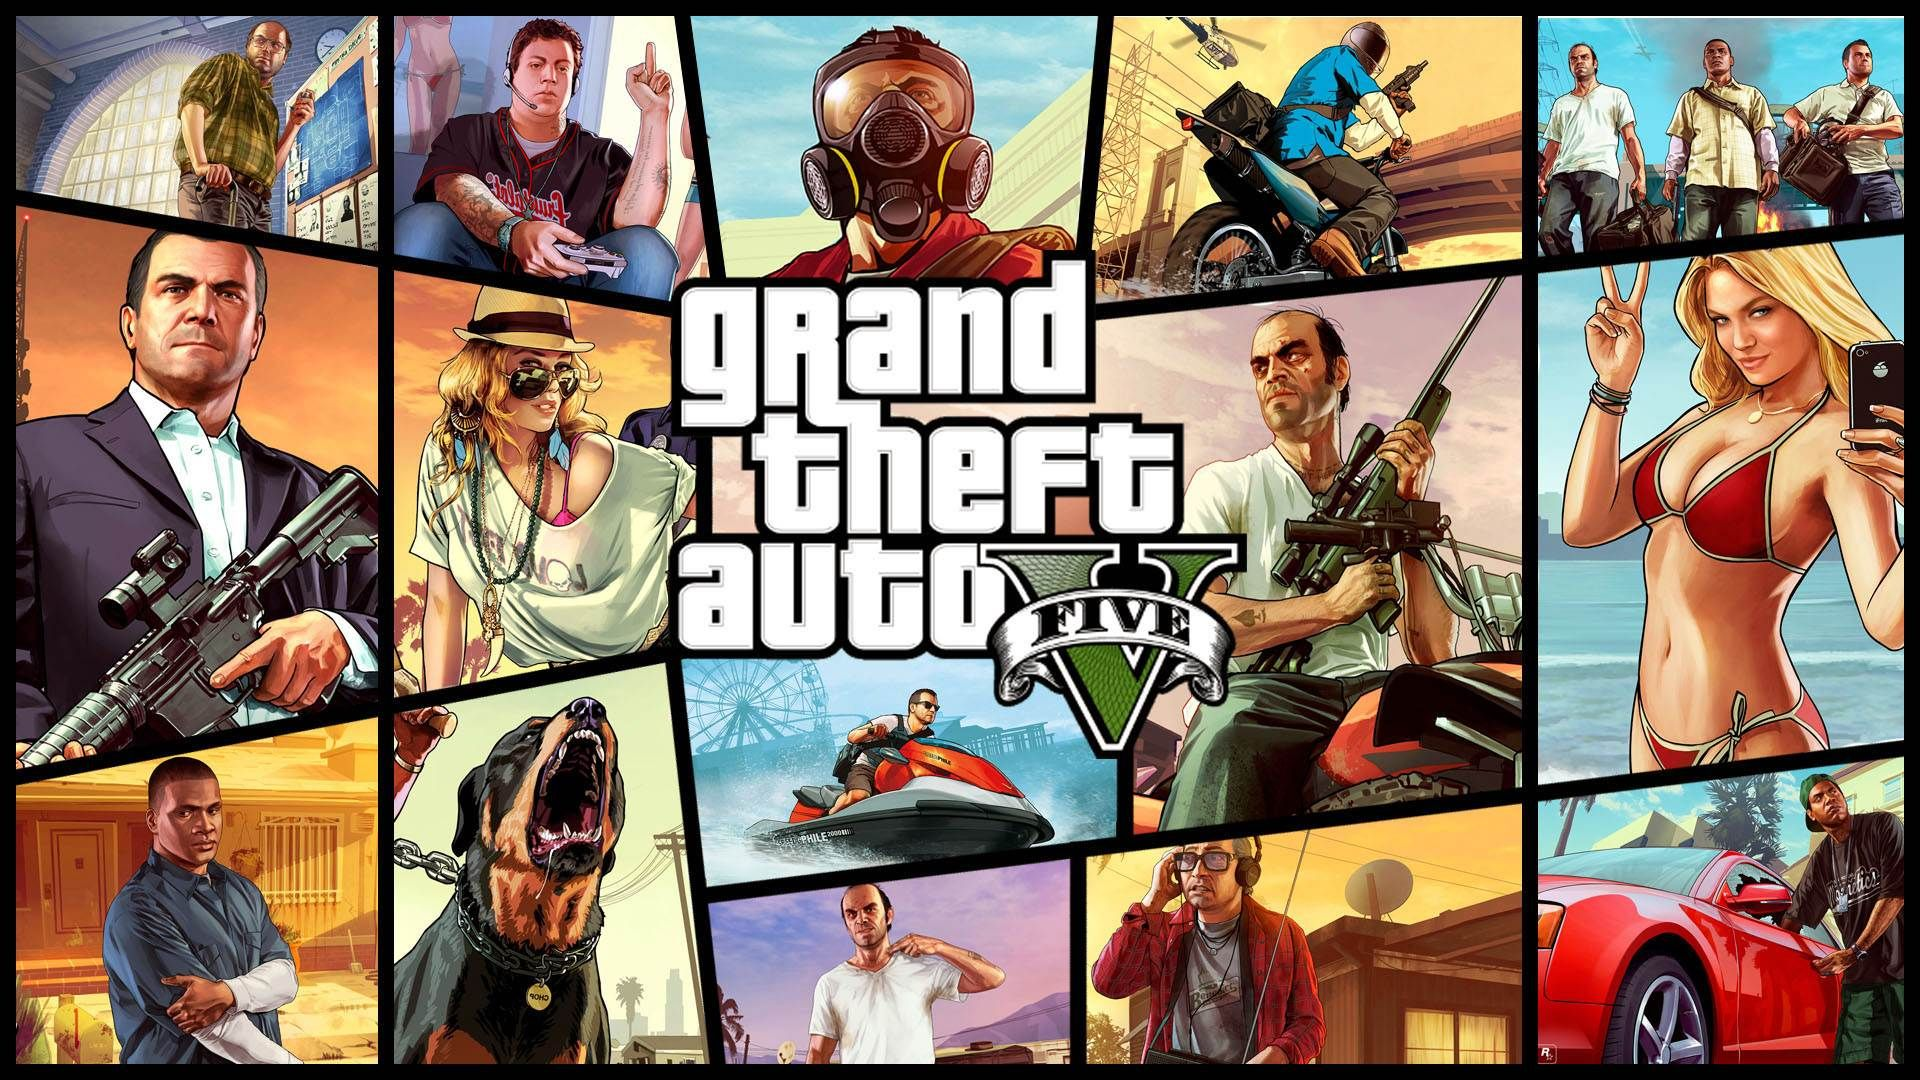 Collection of Gta V Wallpaper on HDWallpapers 1920    1080 Gta V     Collection of Gta V Wallpaper on HDWallpapers 1920    1080 Gta V Wallpaper    Adorable Wallpapers